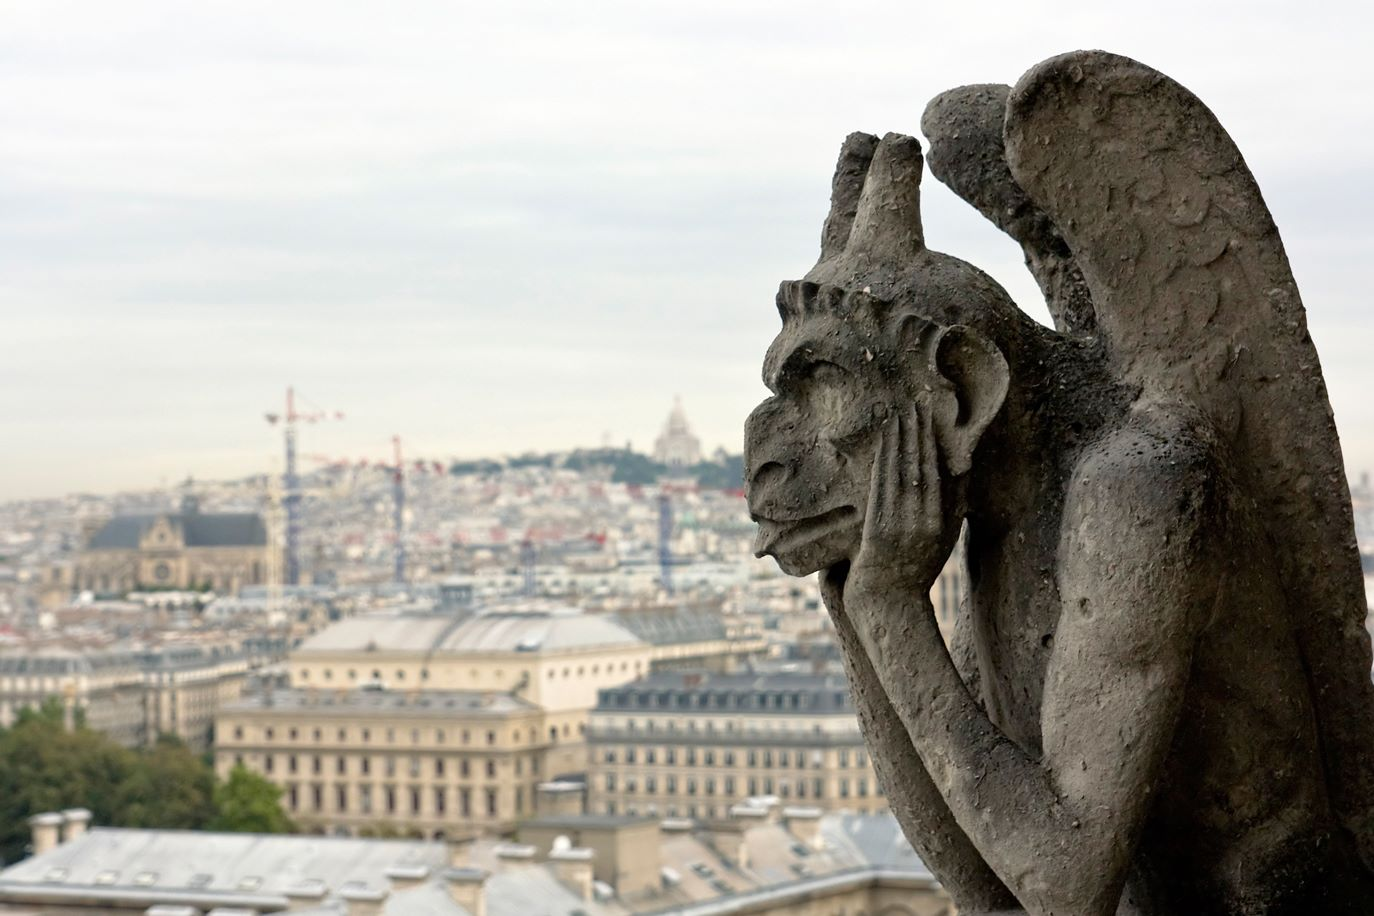 WEB-GARGOYLE-NOTRE DAME-PARIS-FRANCE-Barbara Piancastelli-CC